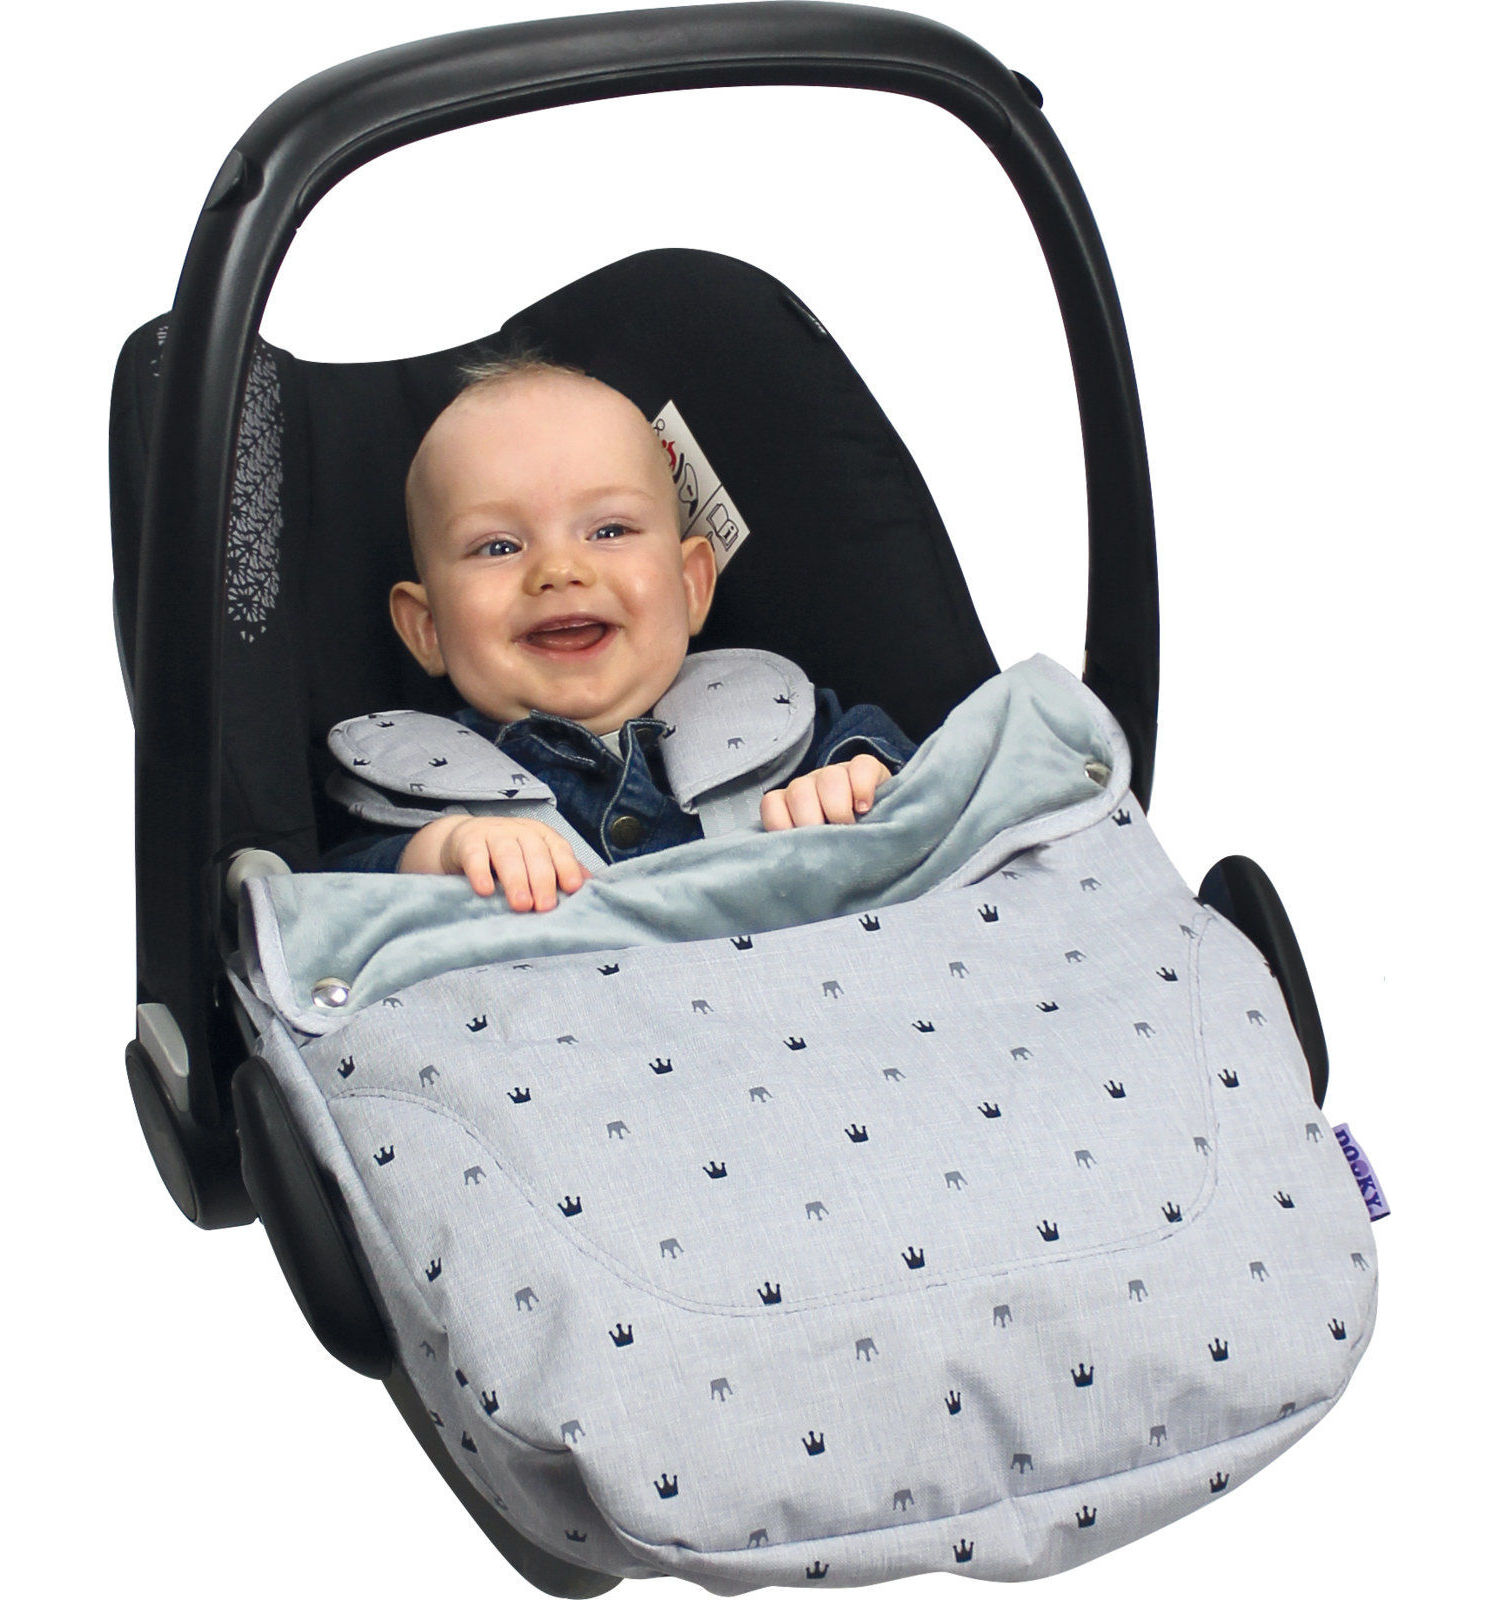 Dooky Cosy Top universal fleeced lined Cosytoe car seat cover - Choose your design - Crowns